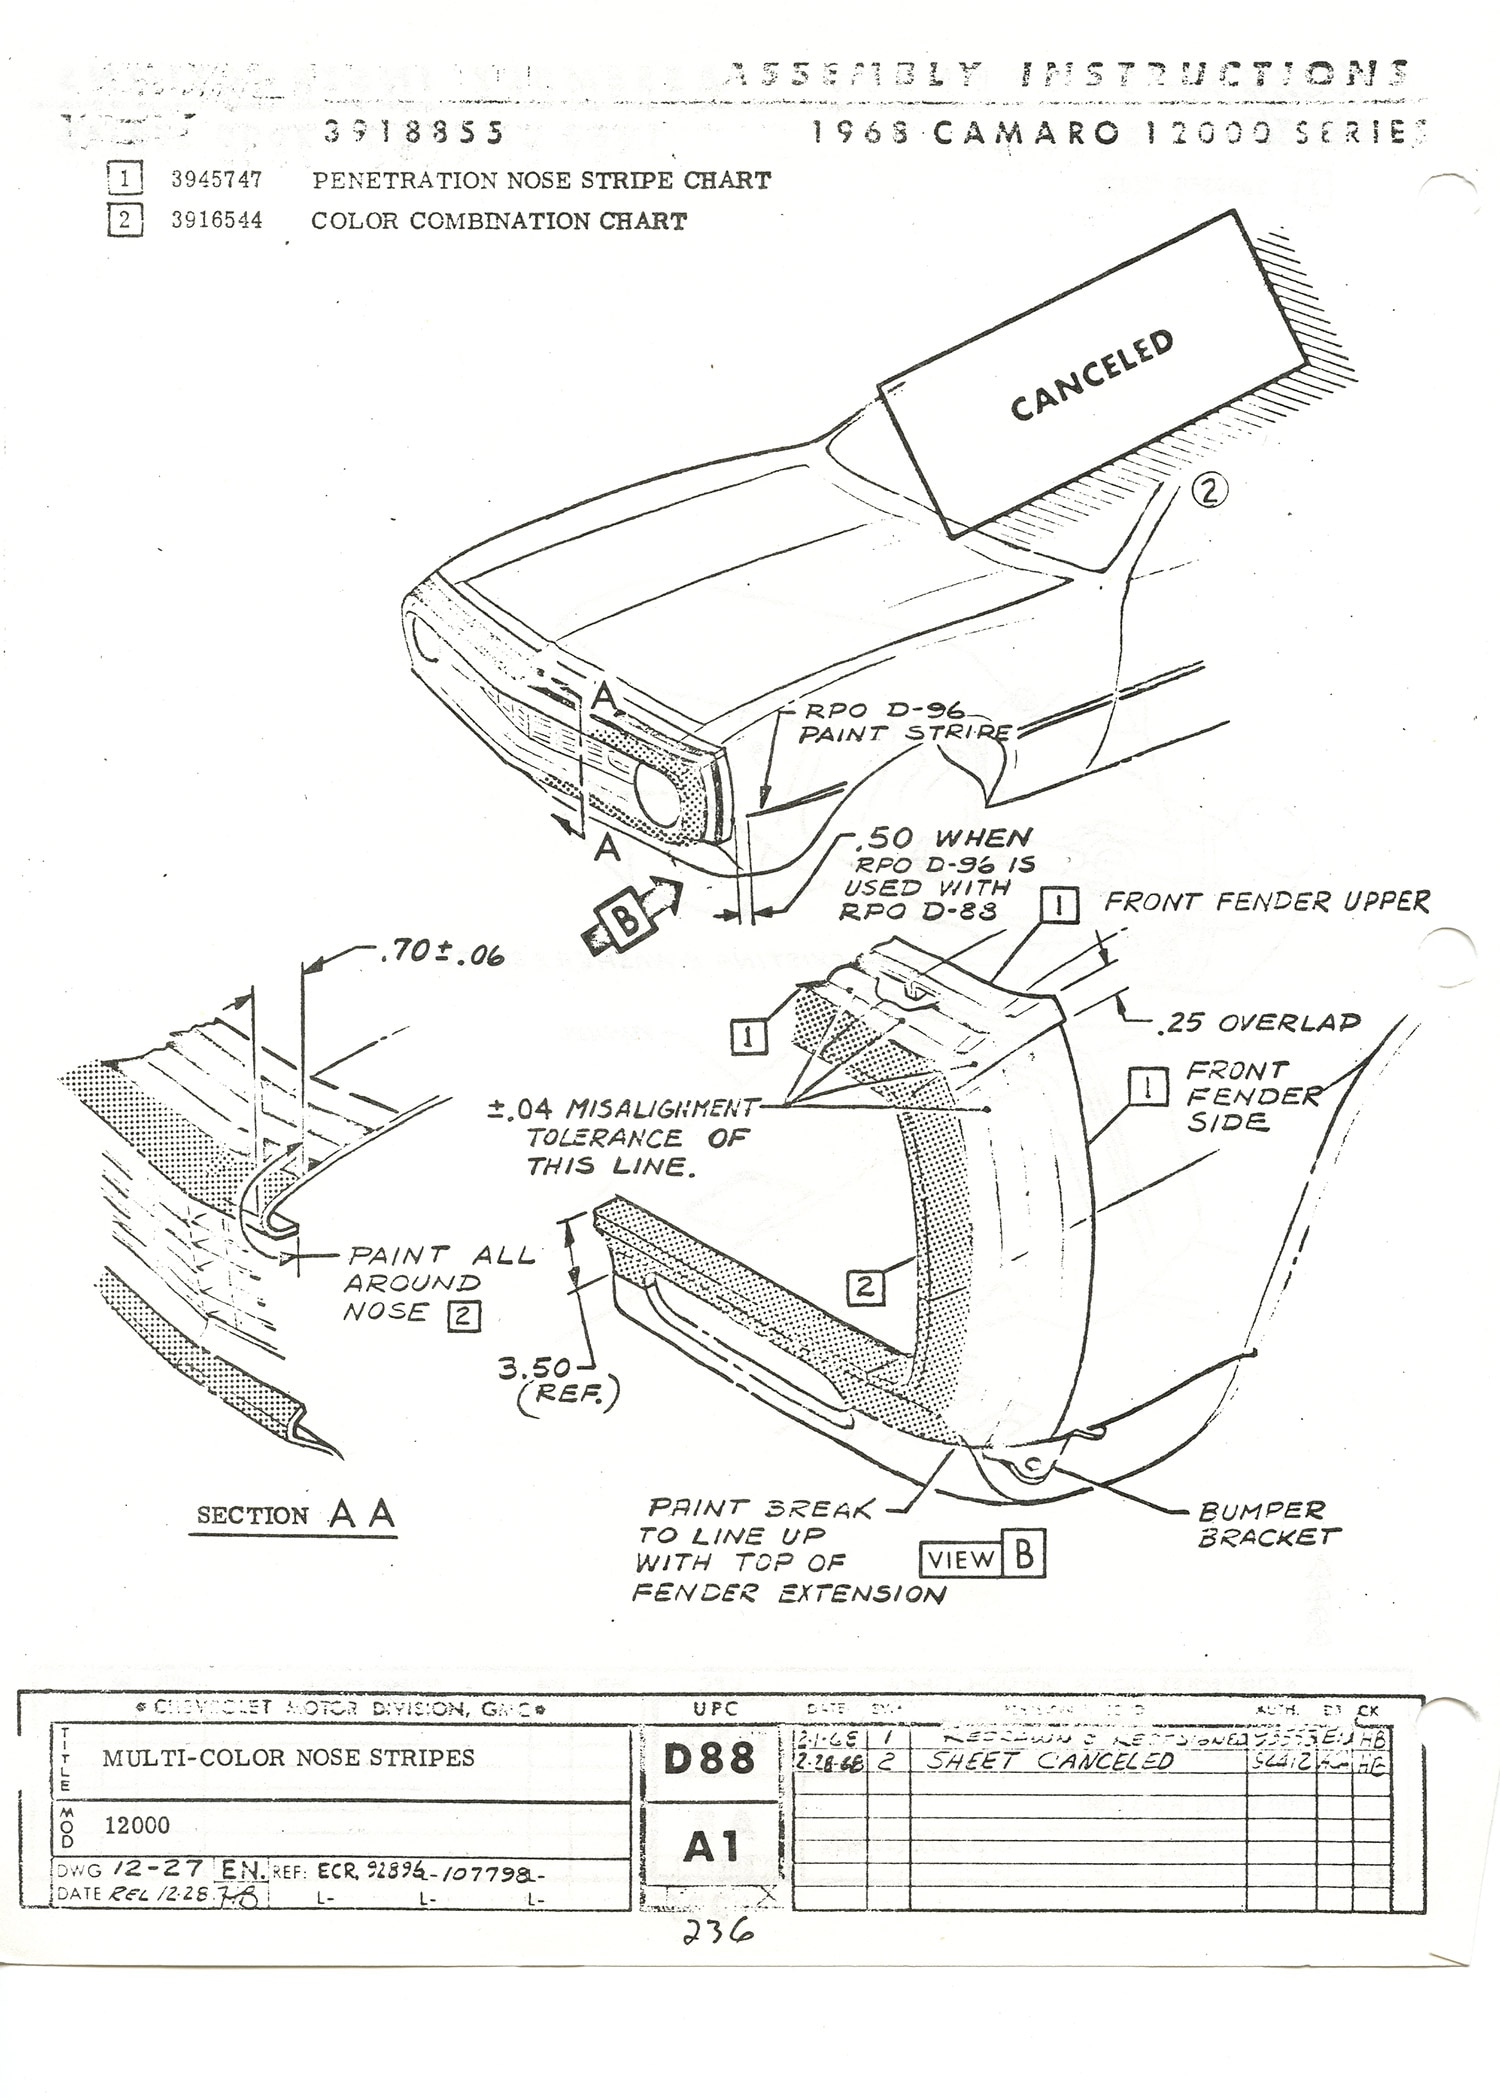 1968 Chevrolet Camaro Ss Paint Instructions Sheet